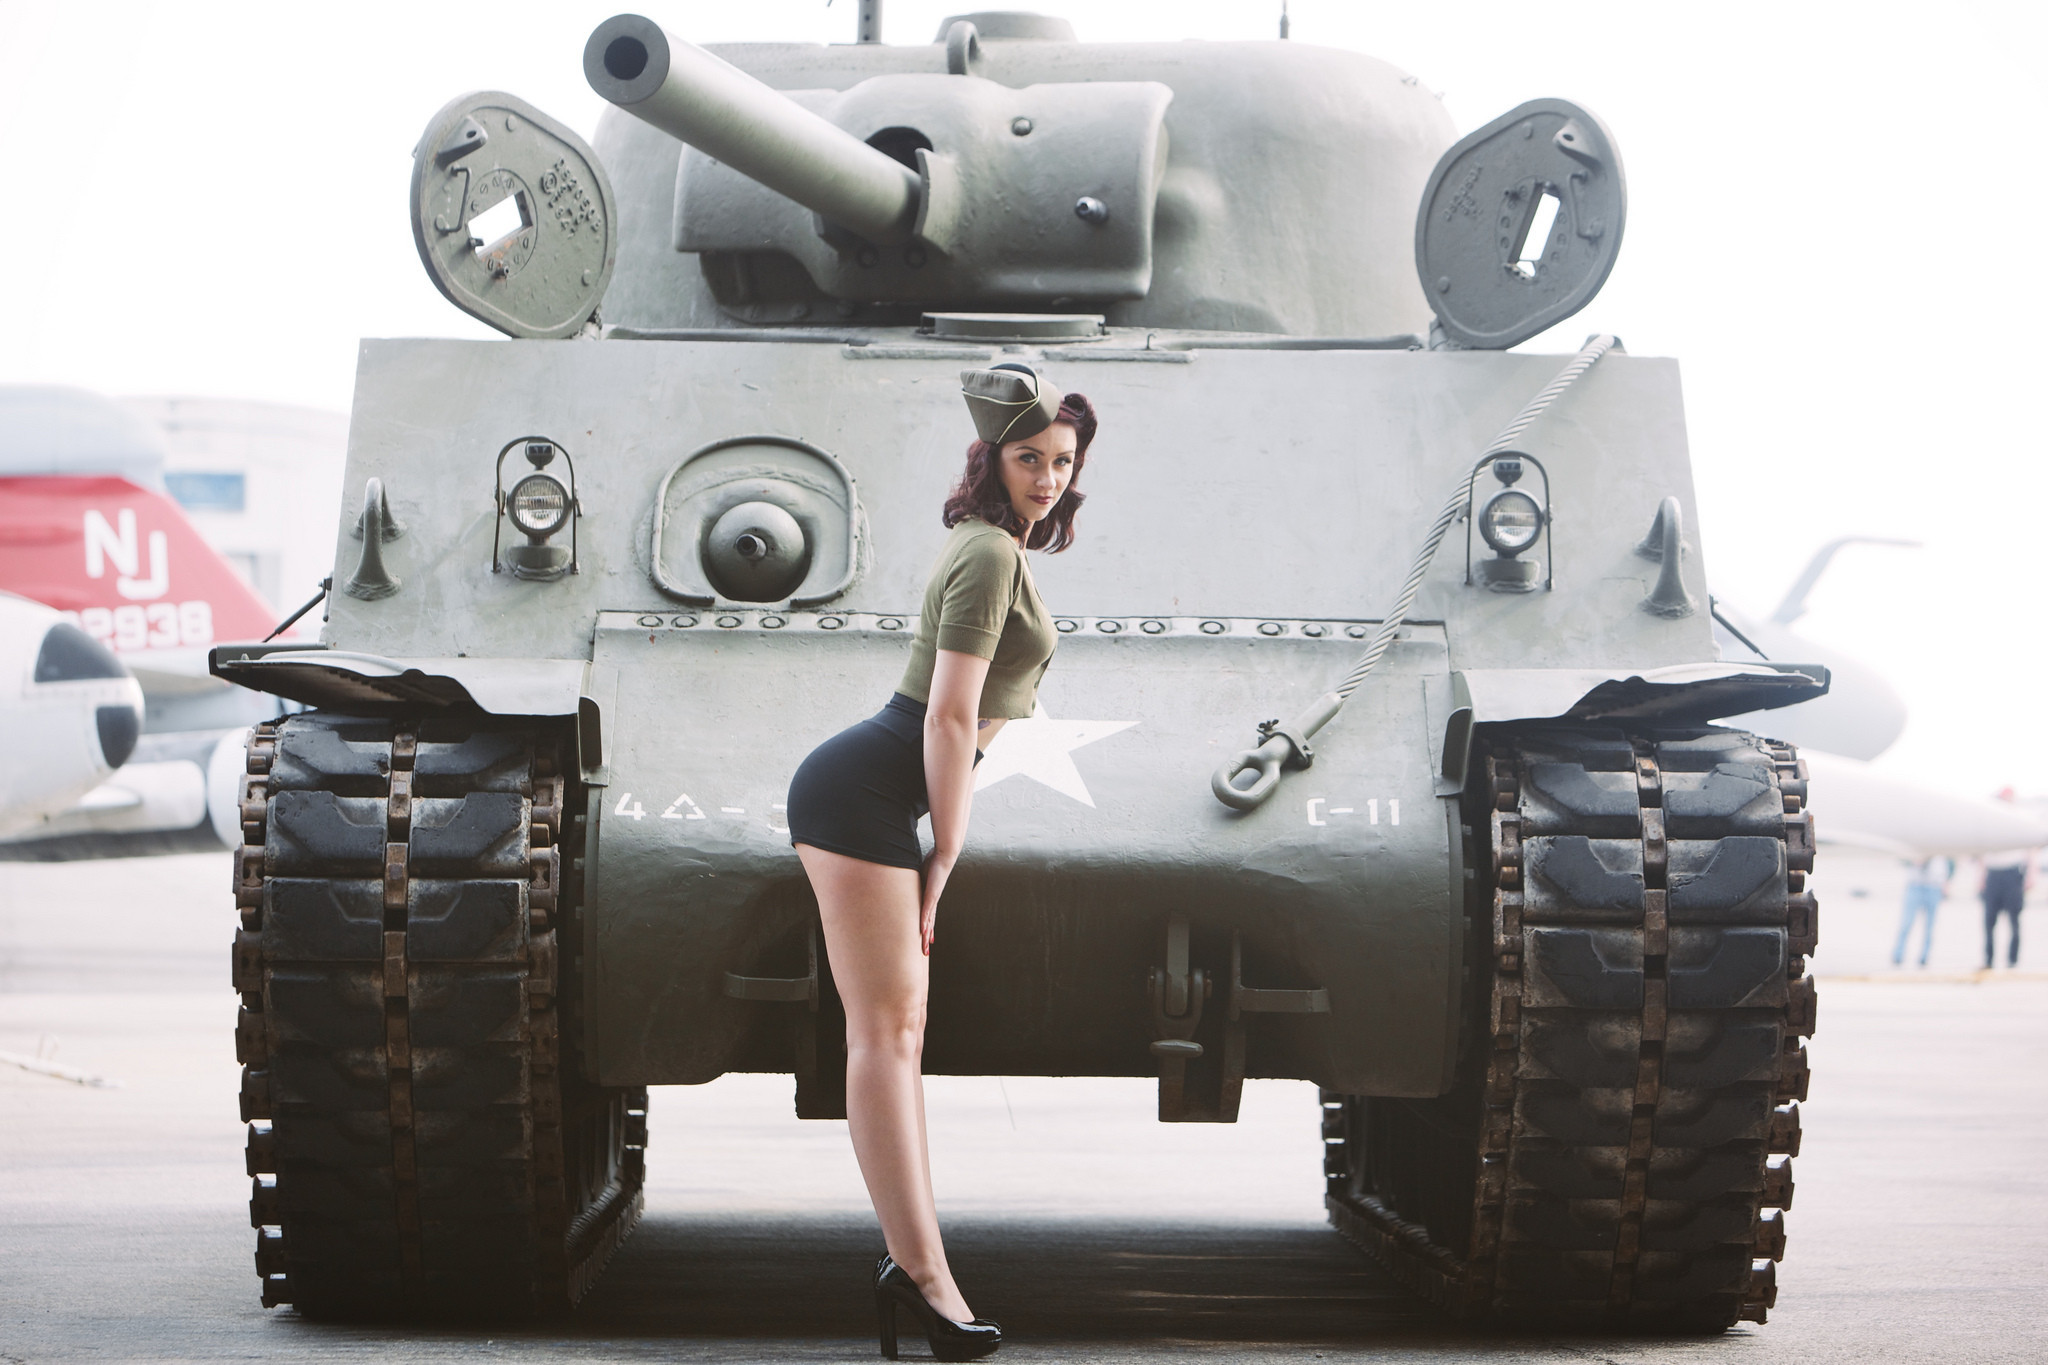 Res: 2048x1365, Looking forLooking for wallpapers in this similar style. WW2 Pinup ...